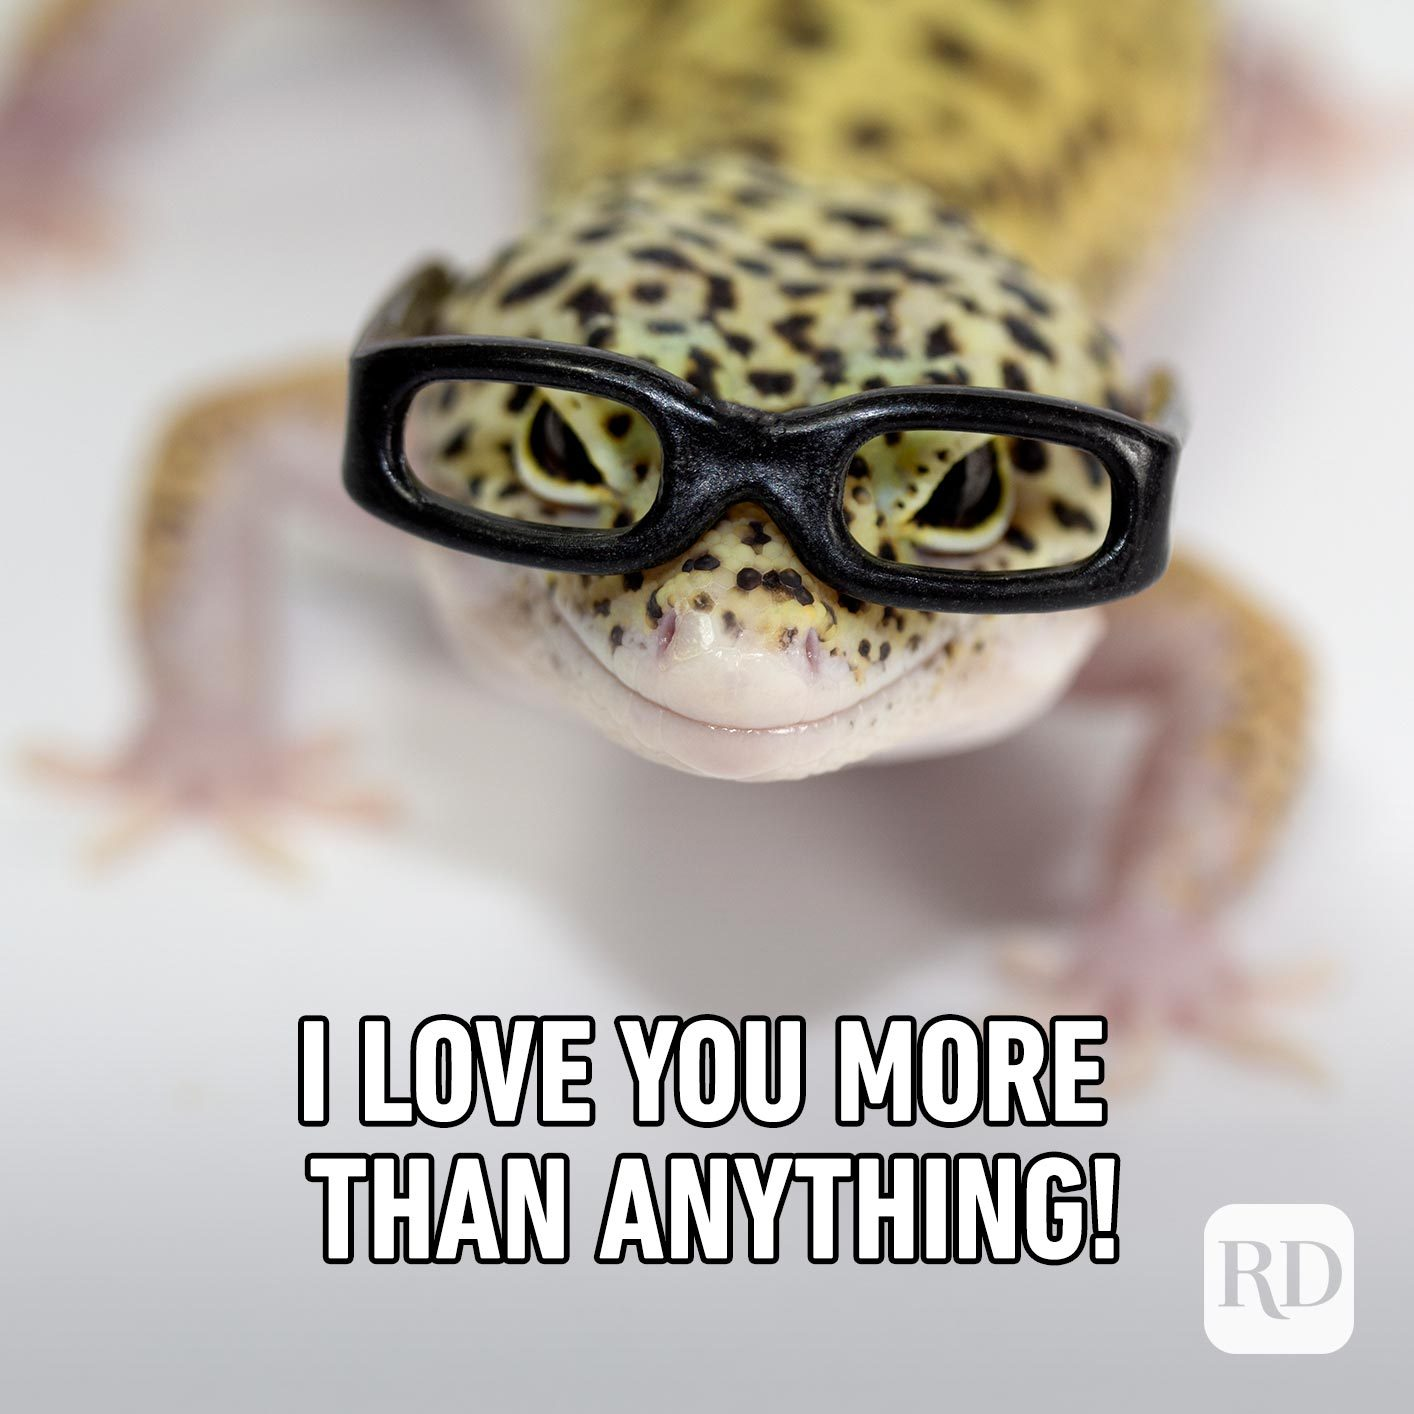 Gecko wearing glasses. Meme text: I love you more than anything!